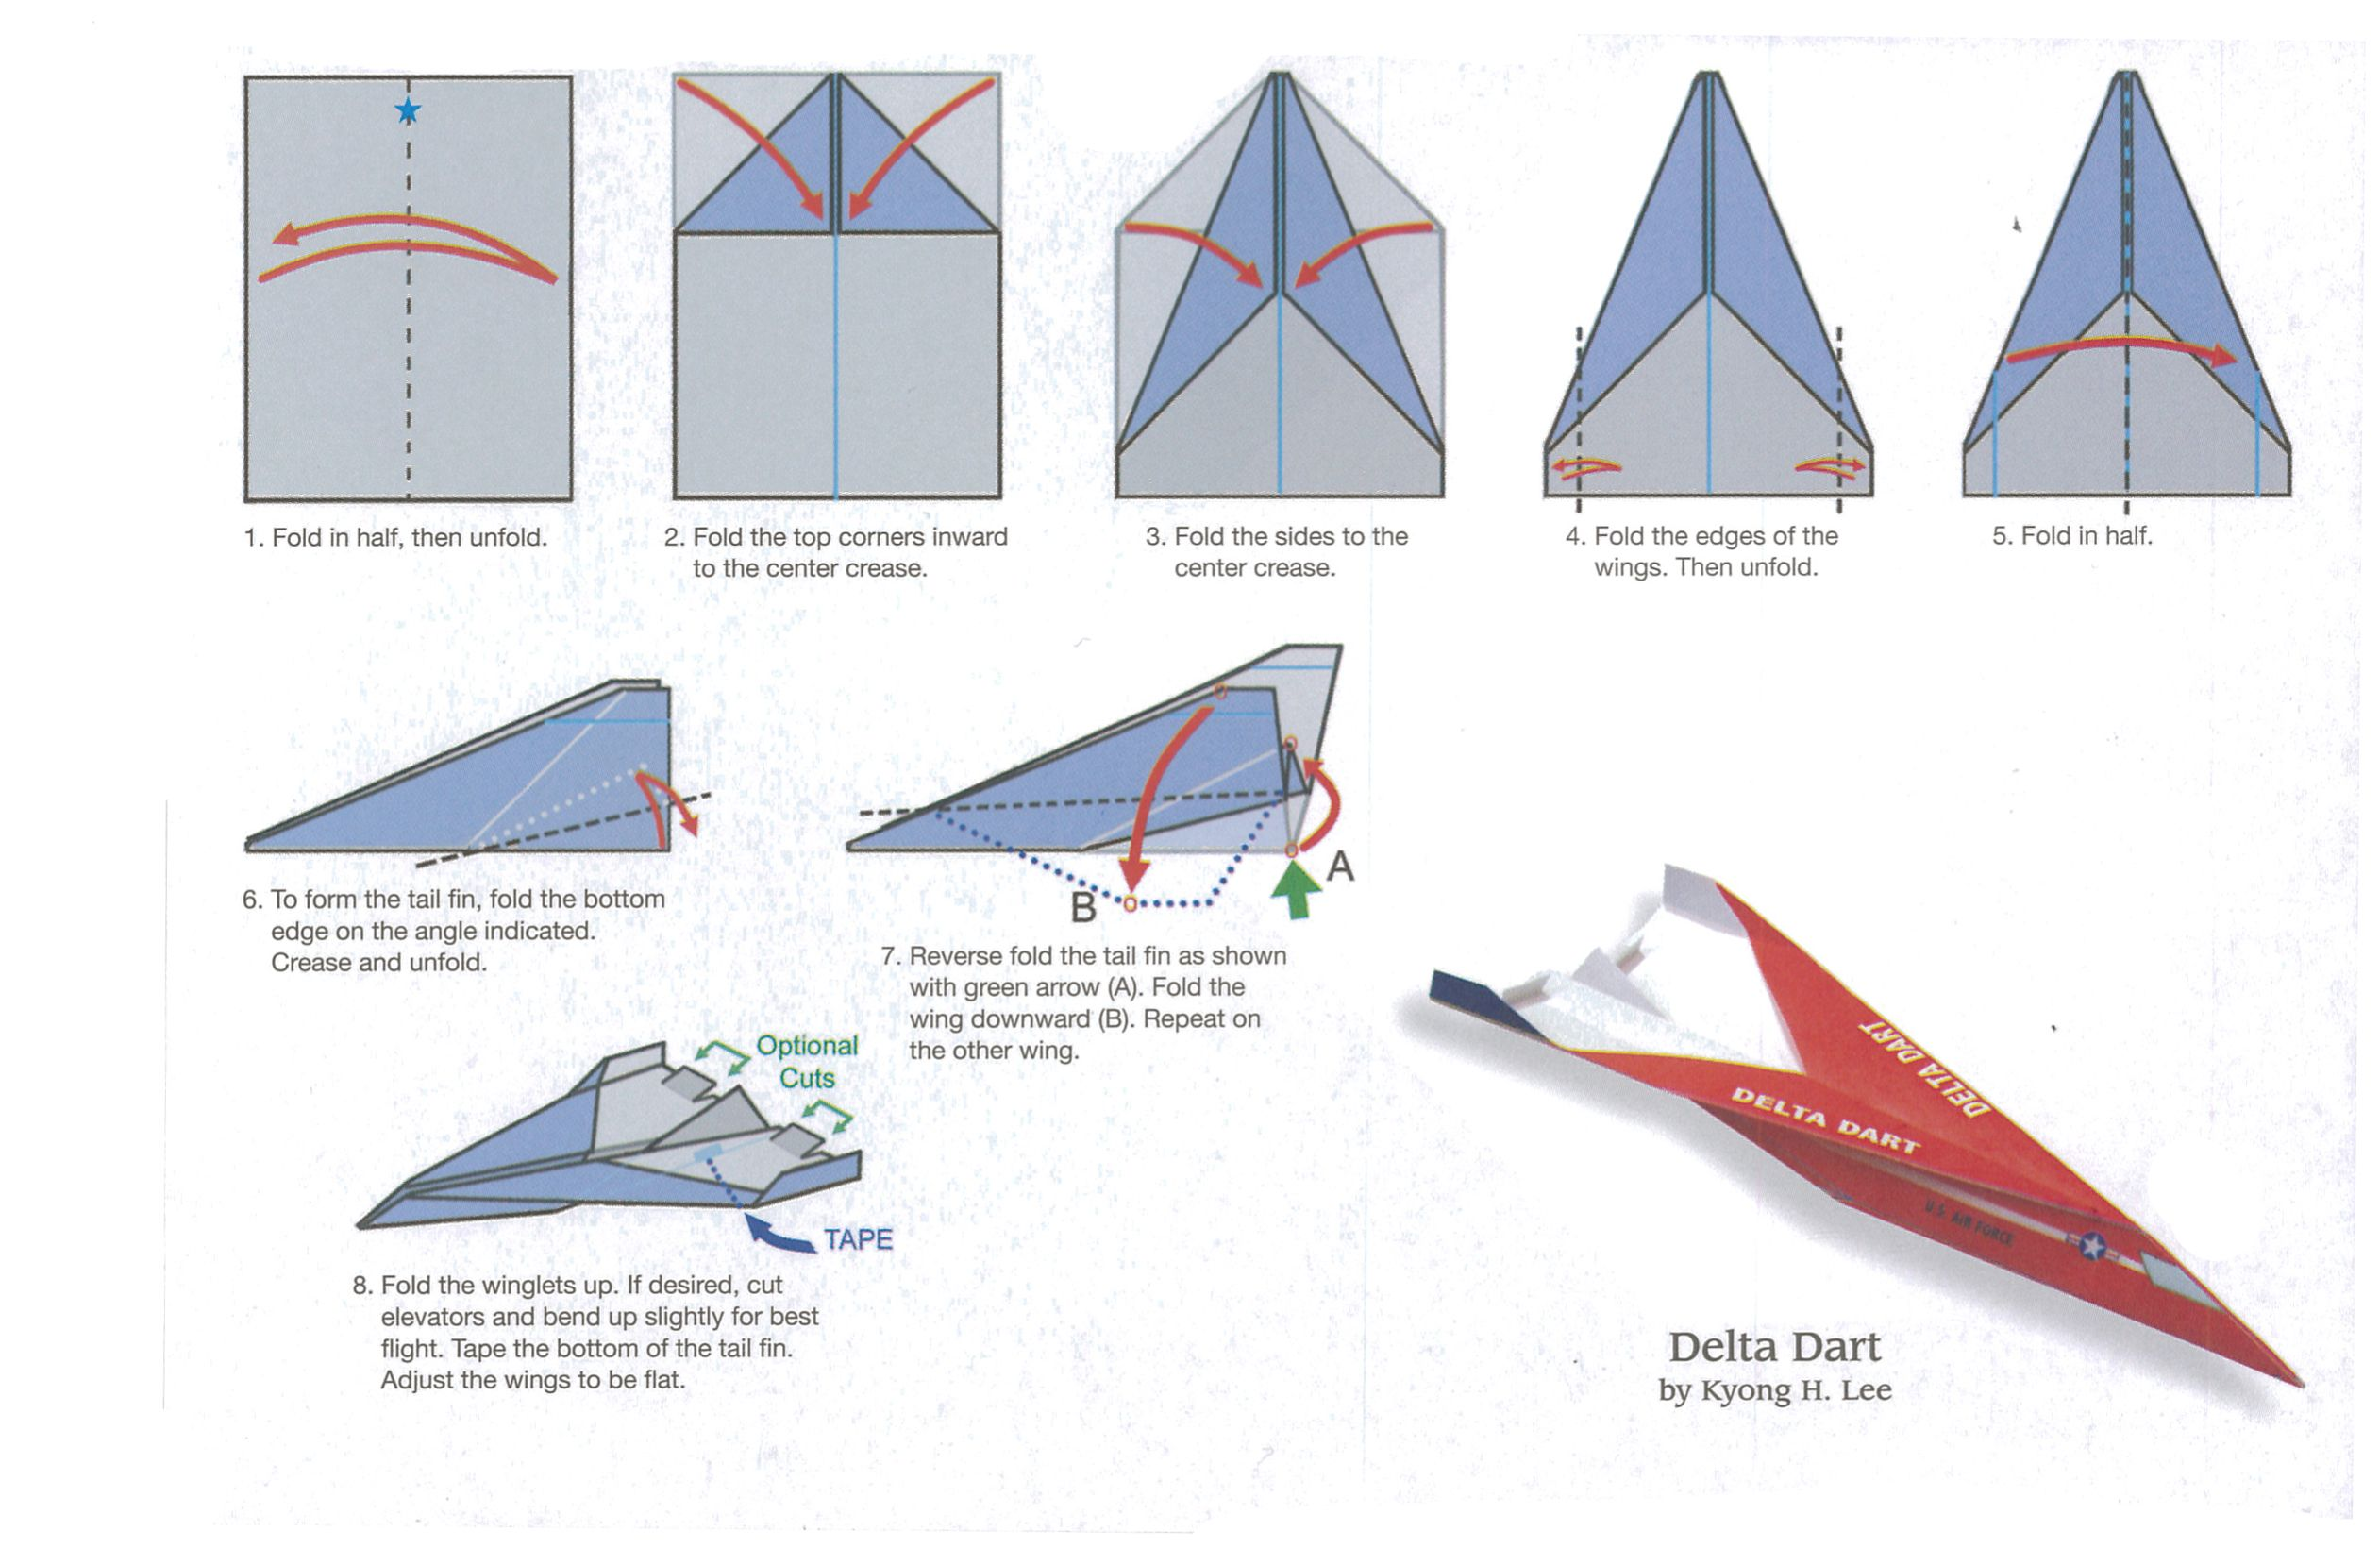 Pin by Gaba on paper planes | Paper airplanes instructions ... - photo#41